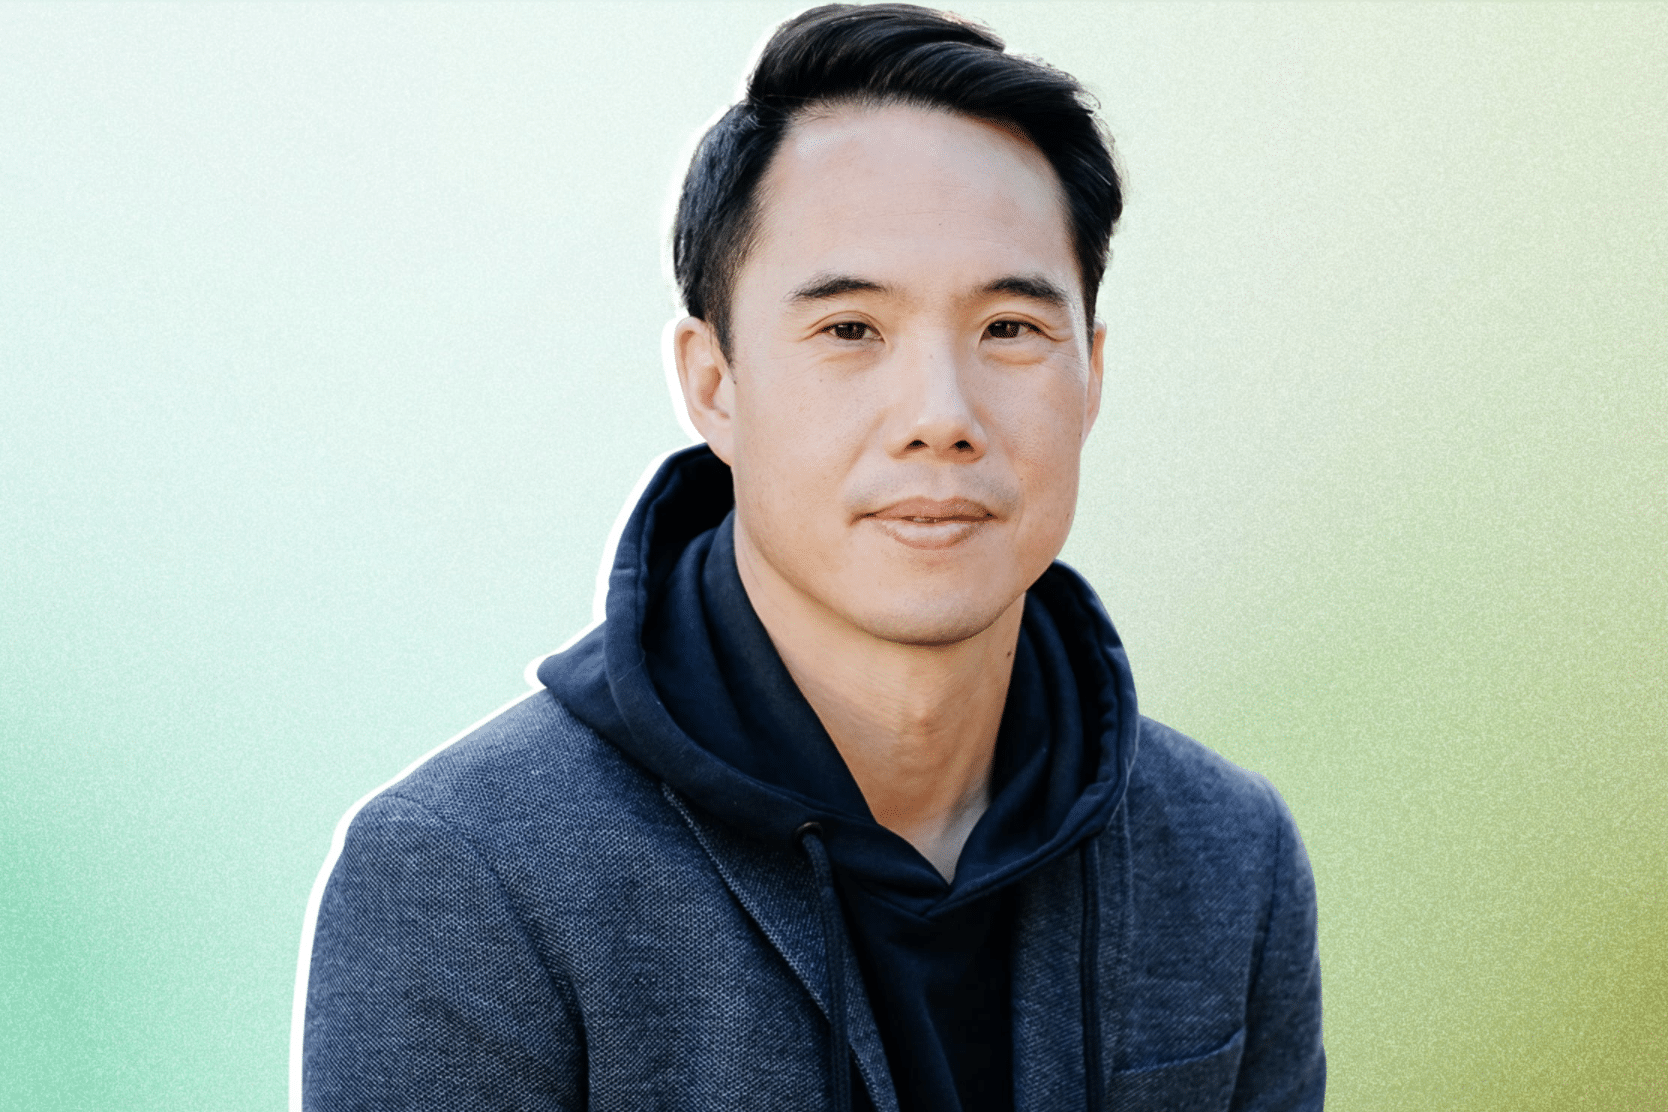 Us, Interrupted: How Writer Charles Yu Is Adapting To COVID-19 With His Family